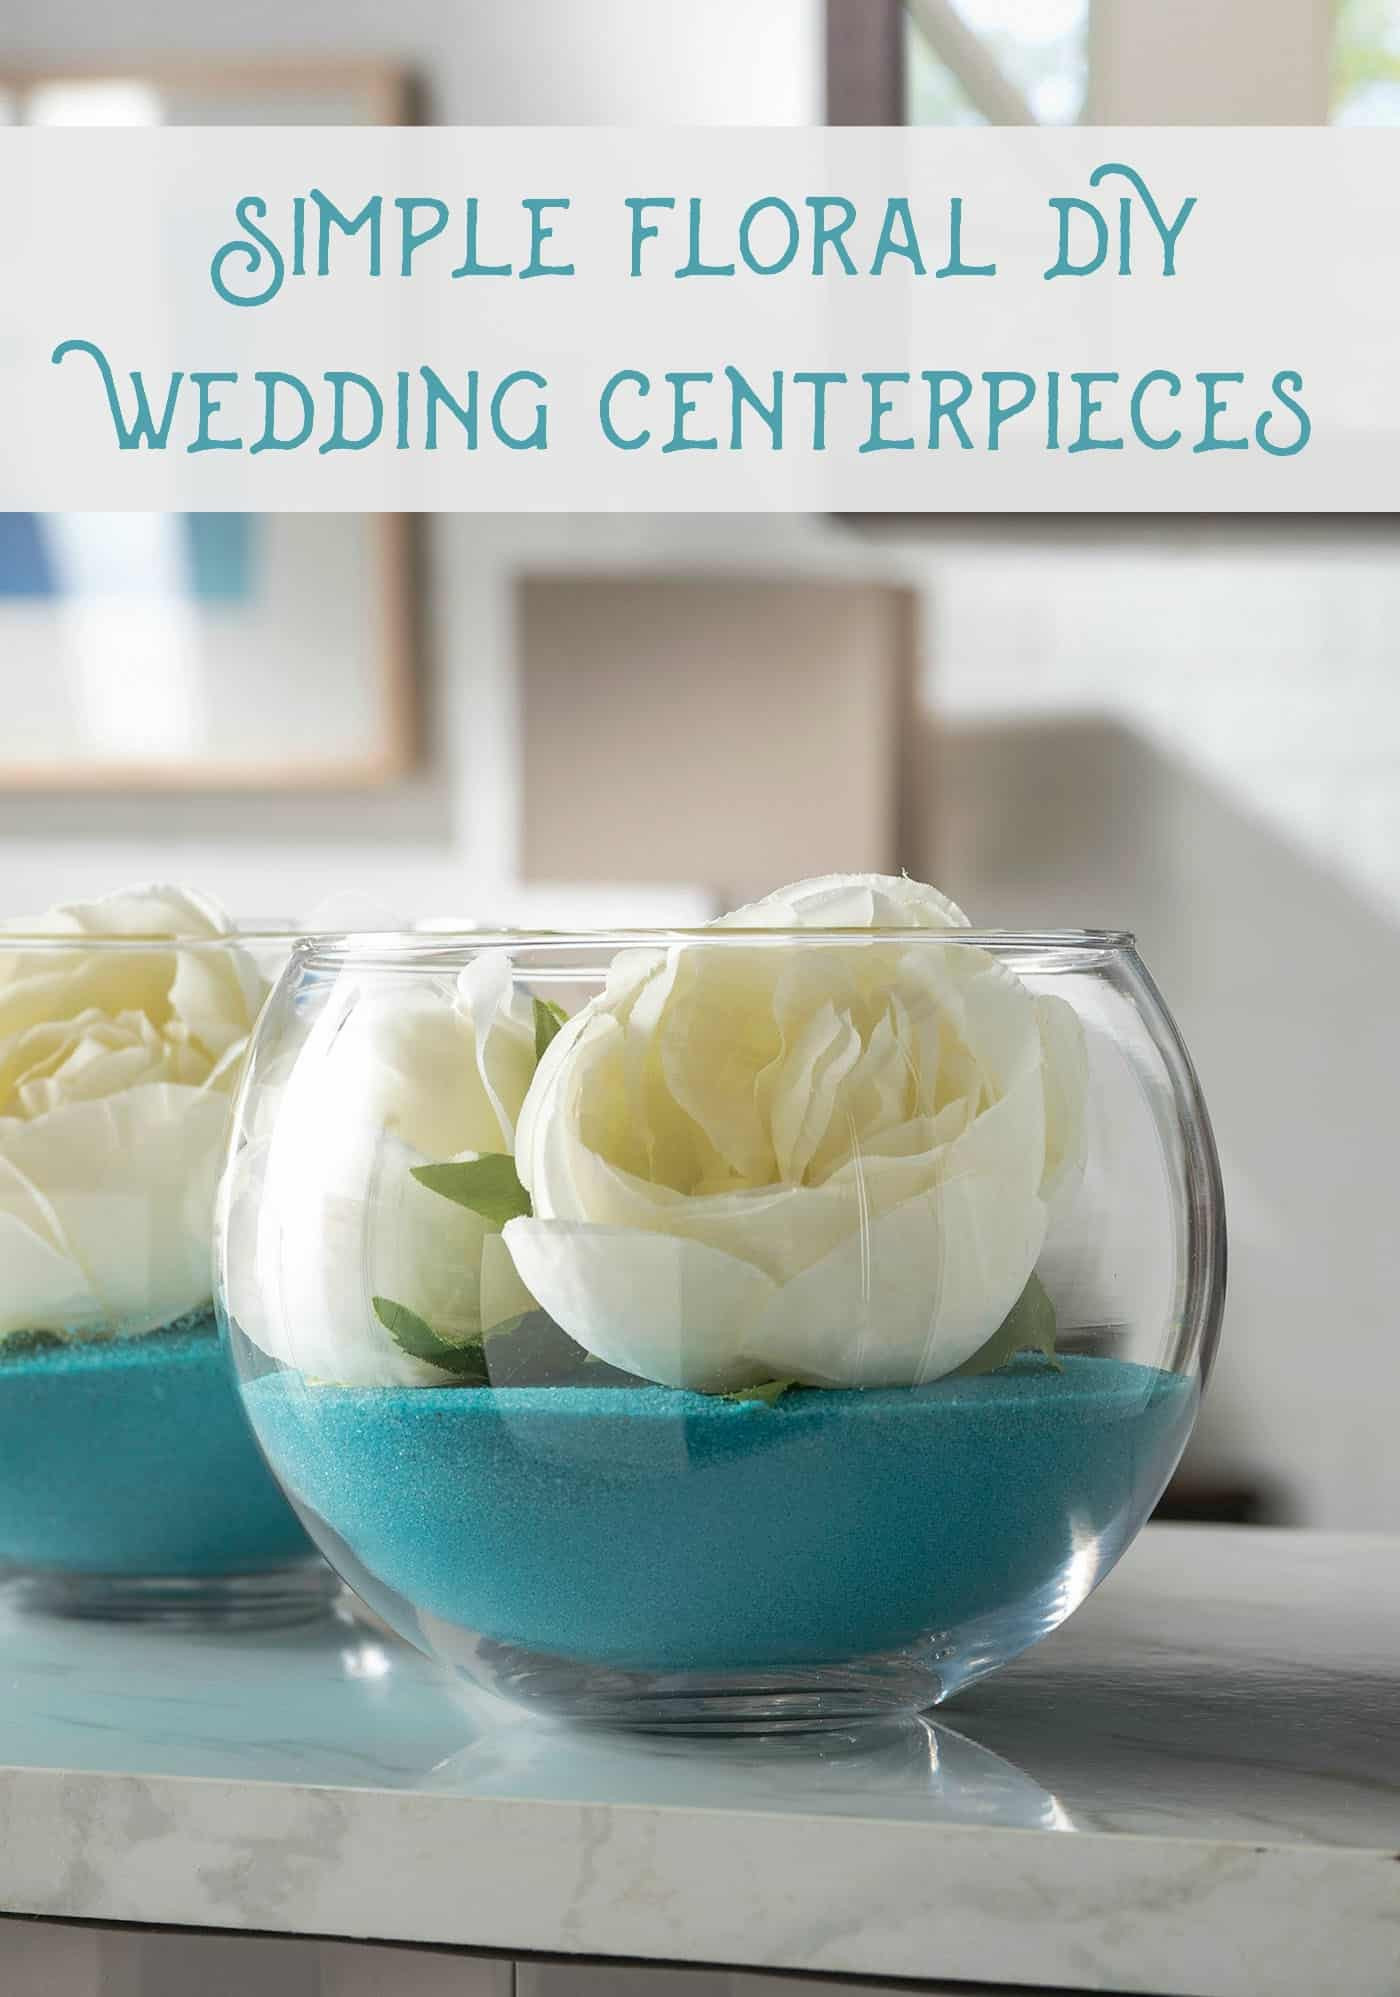 Best ideas about Easy DIY Wedding Centerpieces . Save or Pin Quick Floral DIY Wedding Centerpieces diycandy Now.